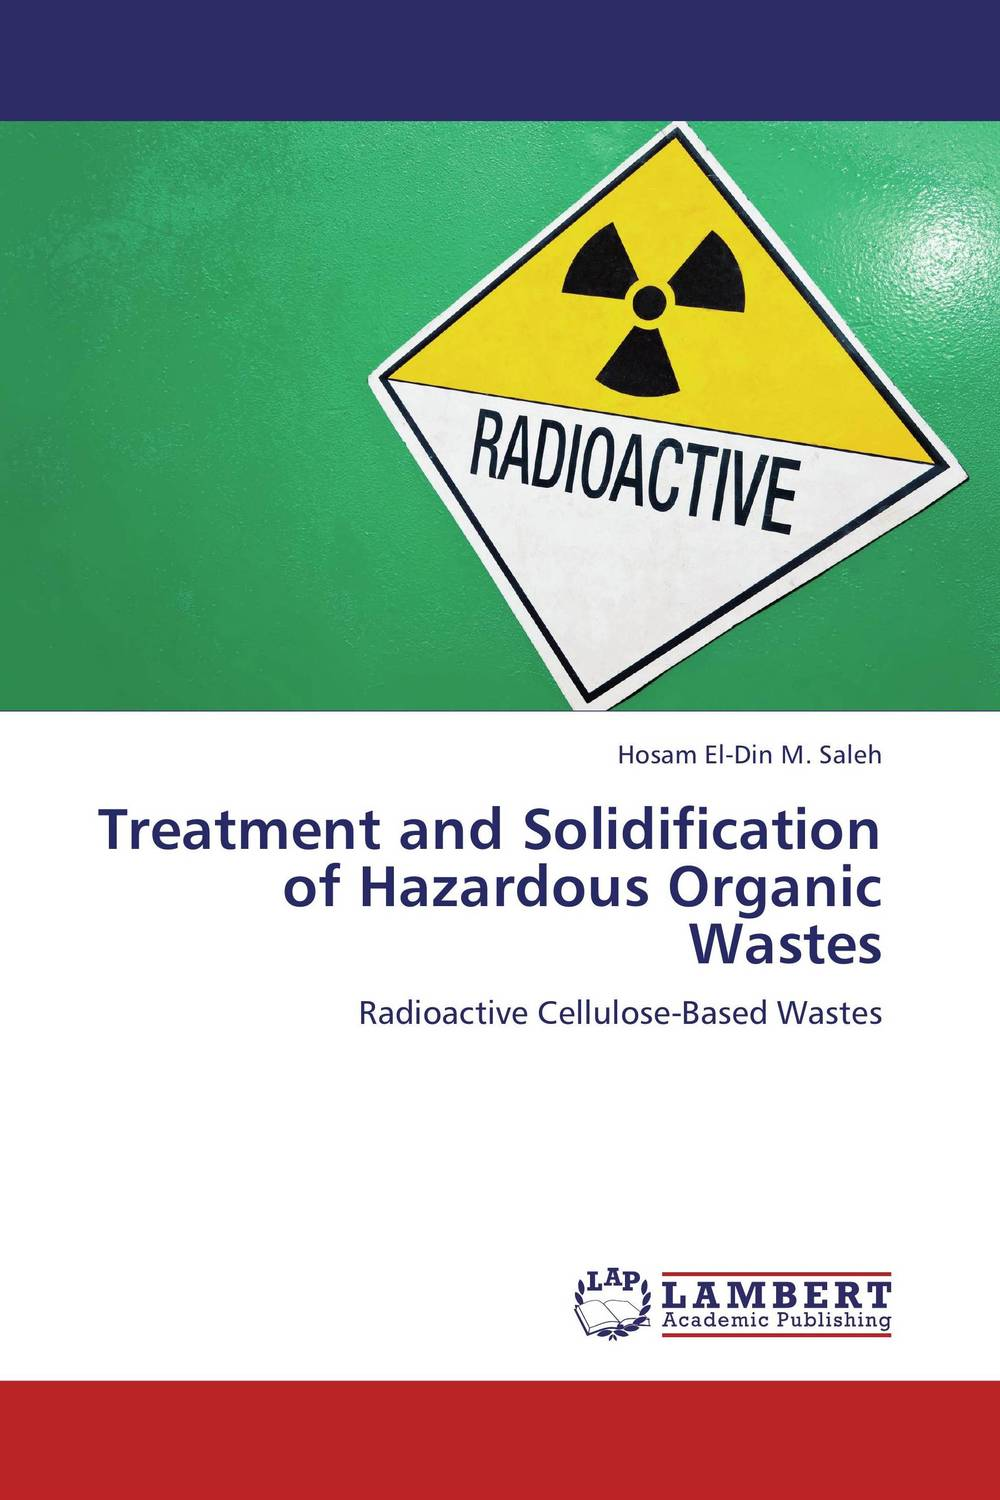 Treatment and Solidification of Hazardous Organic Wastes prc environmental mgmt s hazardous waste reducation in the metal finishing industry